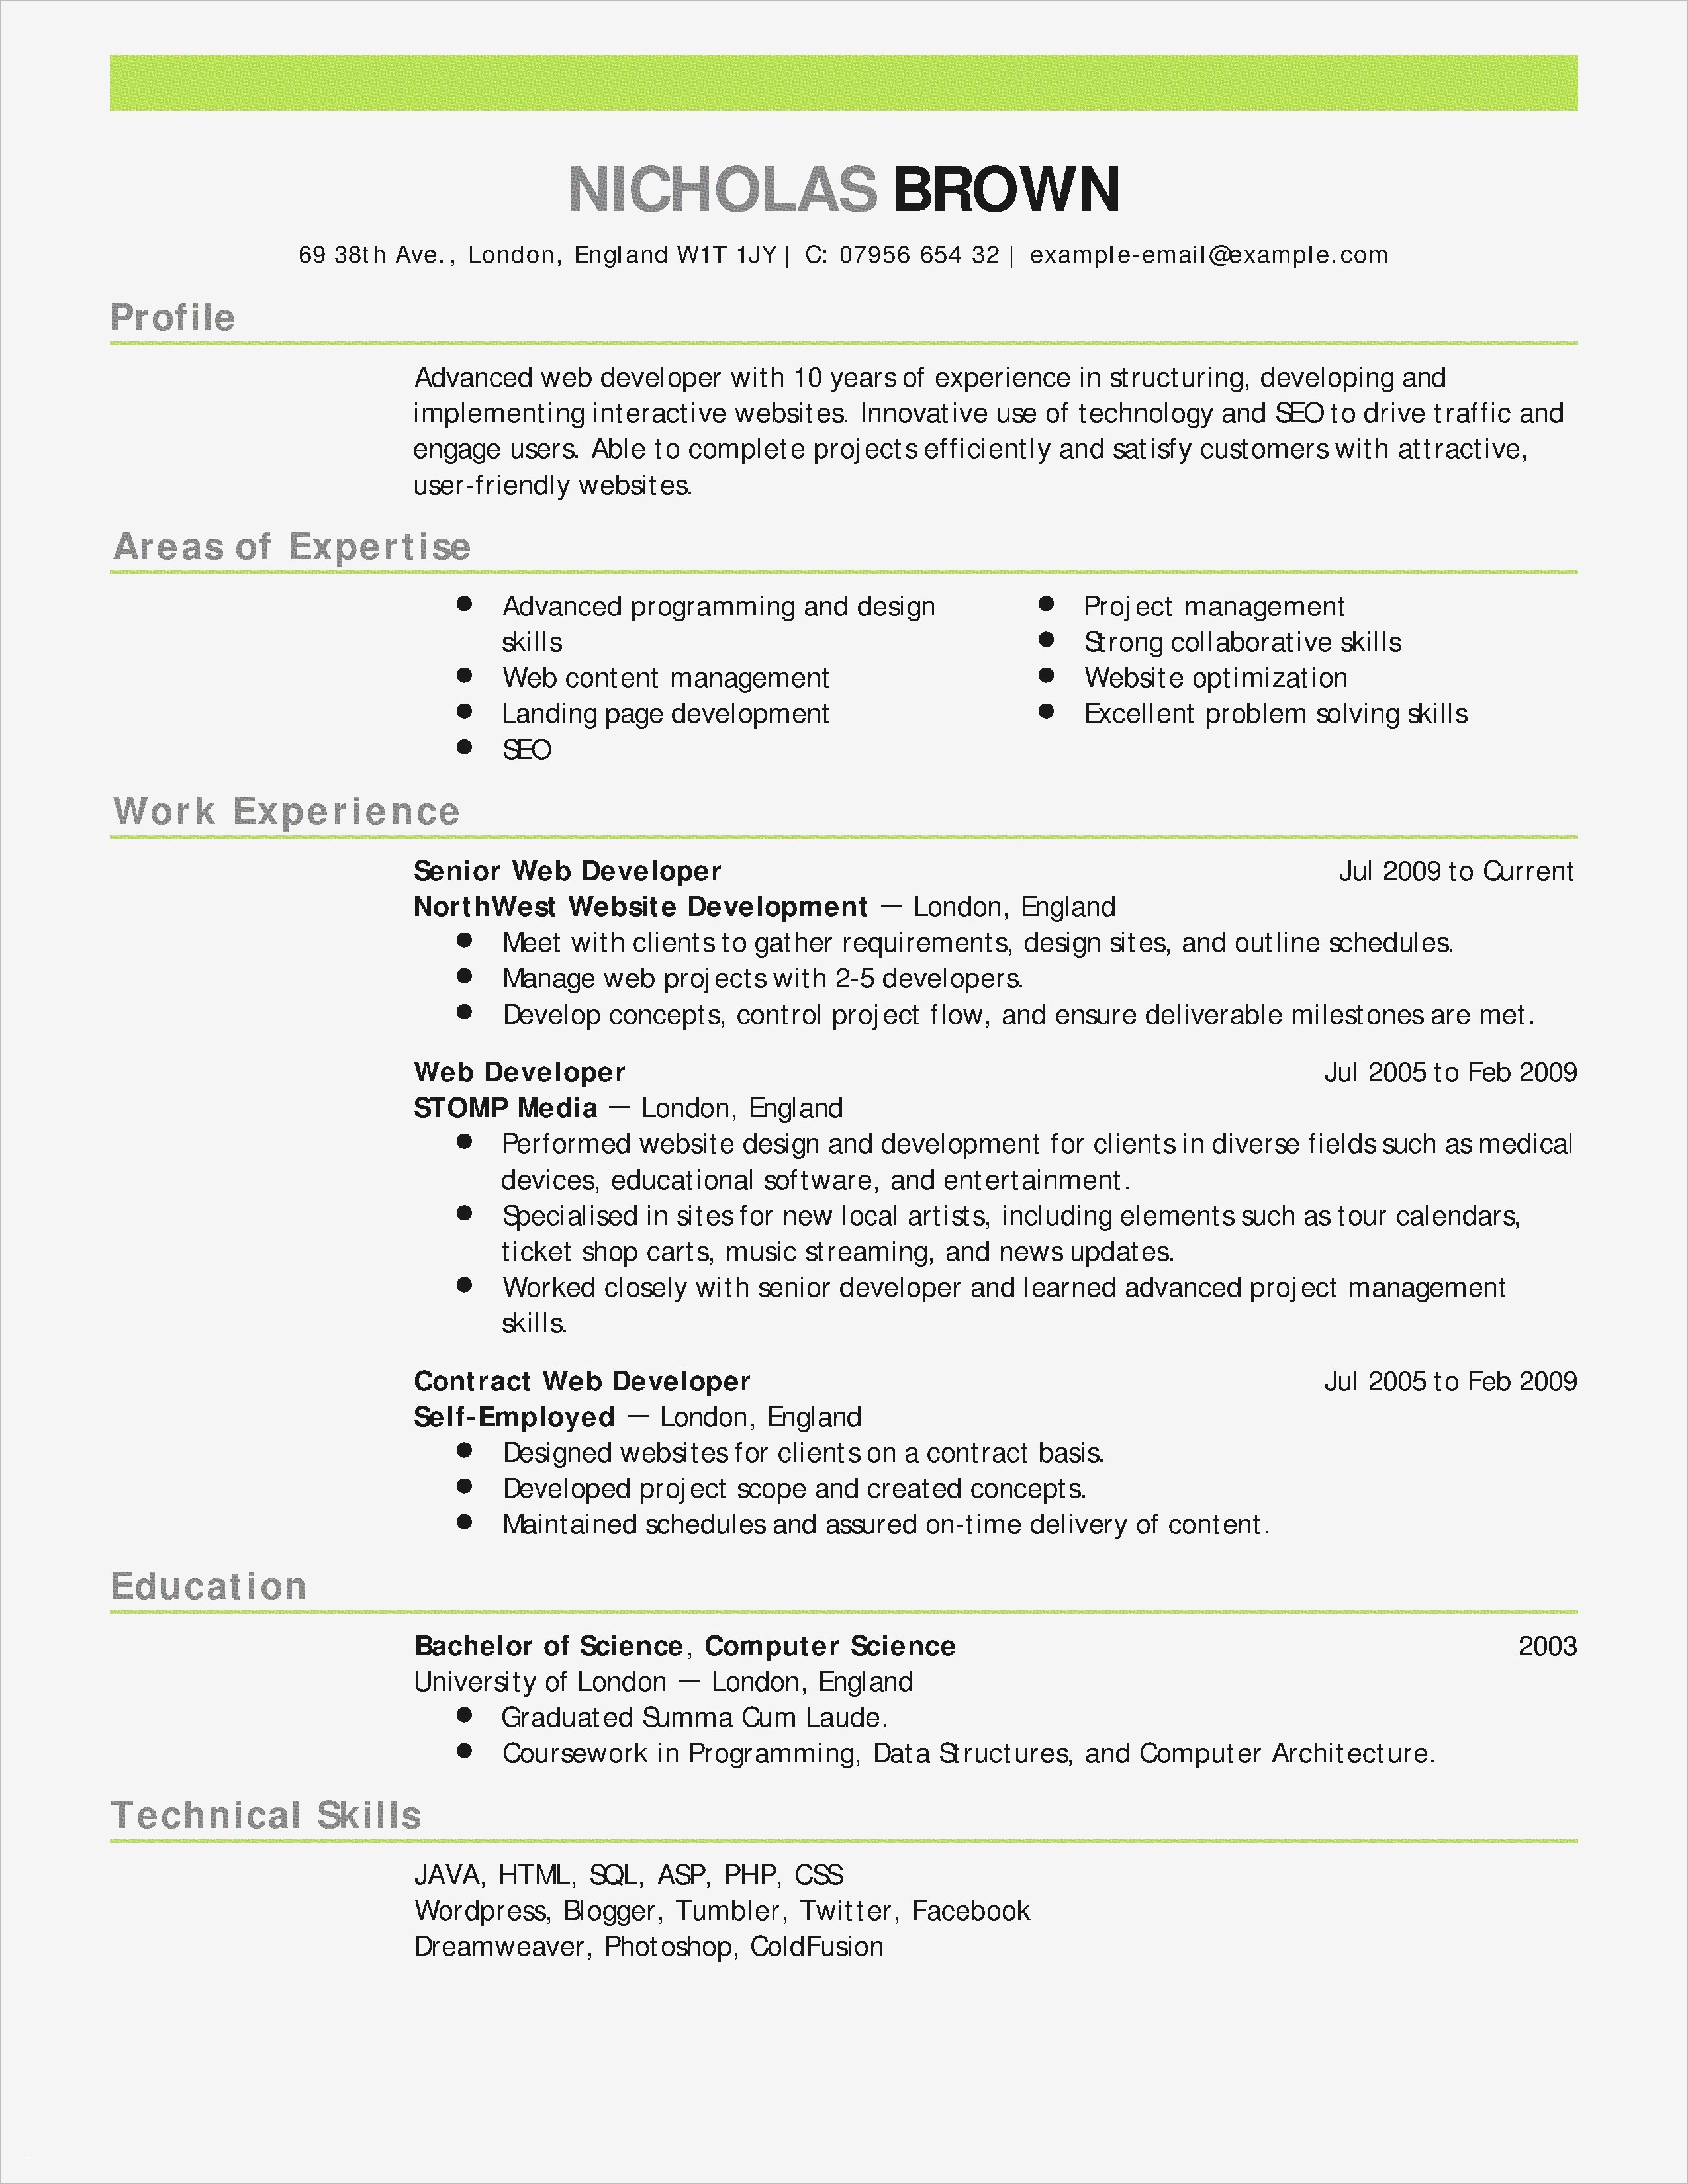 Free Online Resume Cover Letter Template - Beautiful Free Resume Templates for Teachers